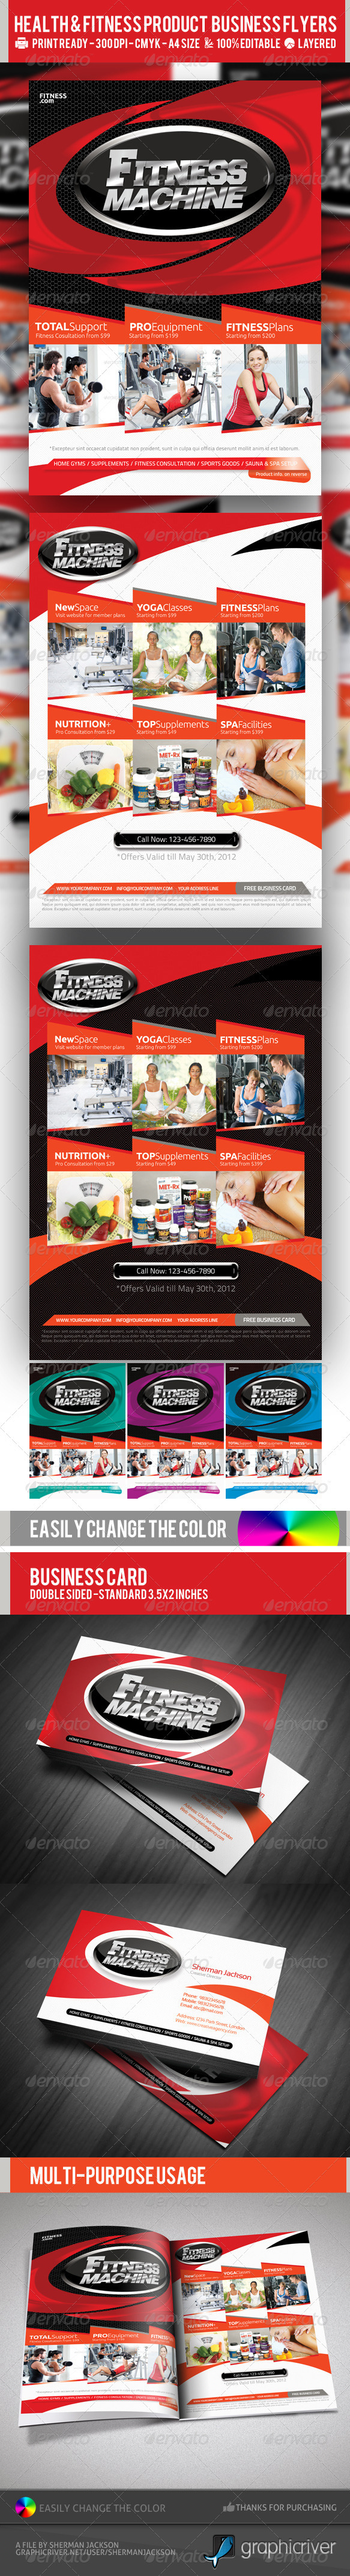 Multipurpose Fitness or Product Flyer PSD Template - Corporate Flyers